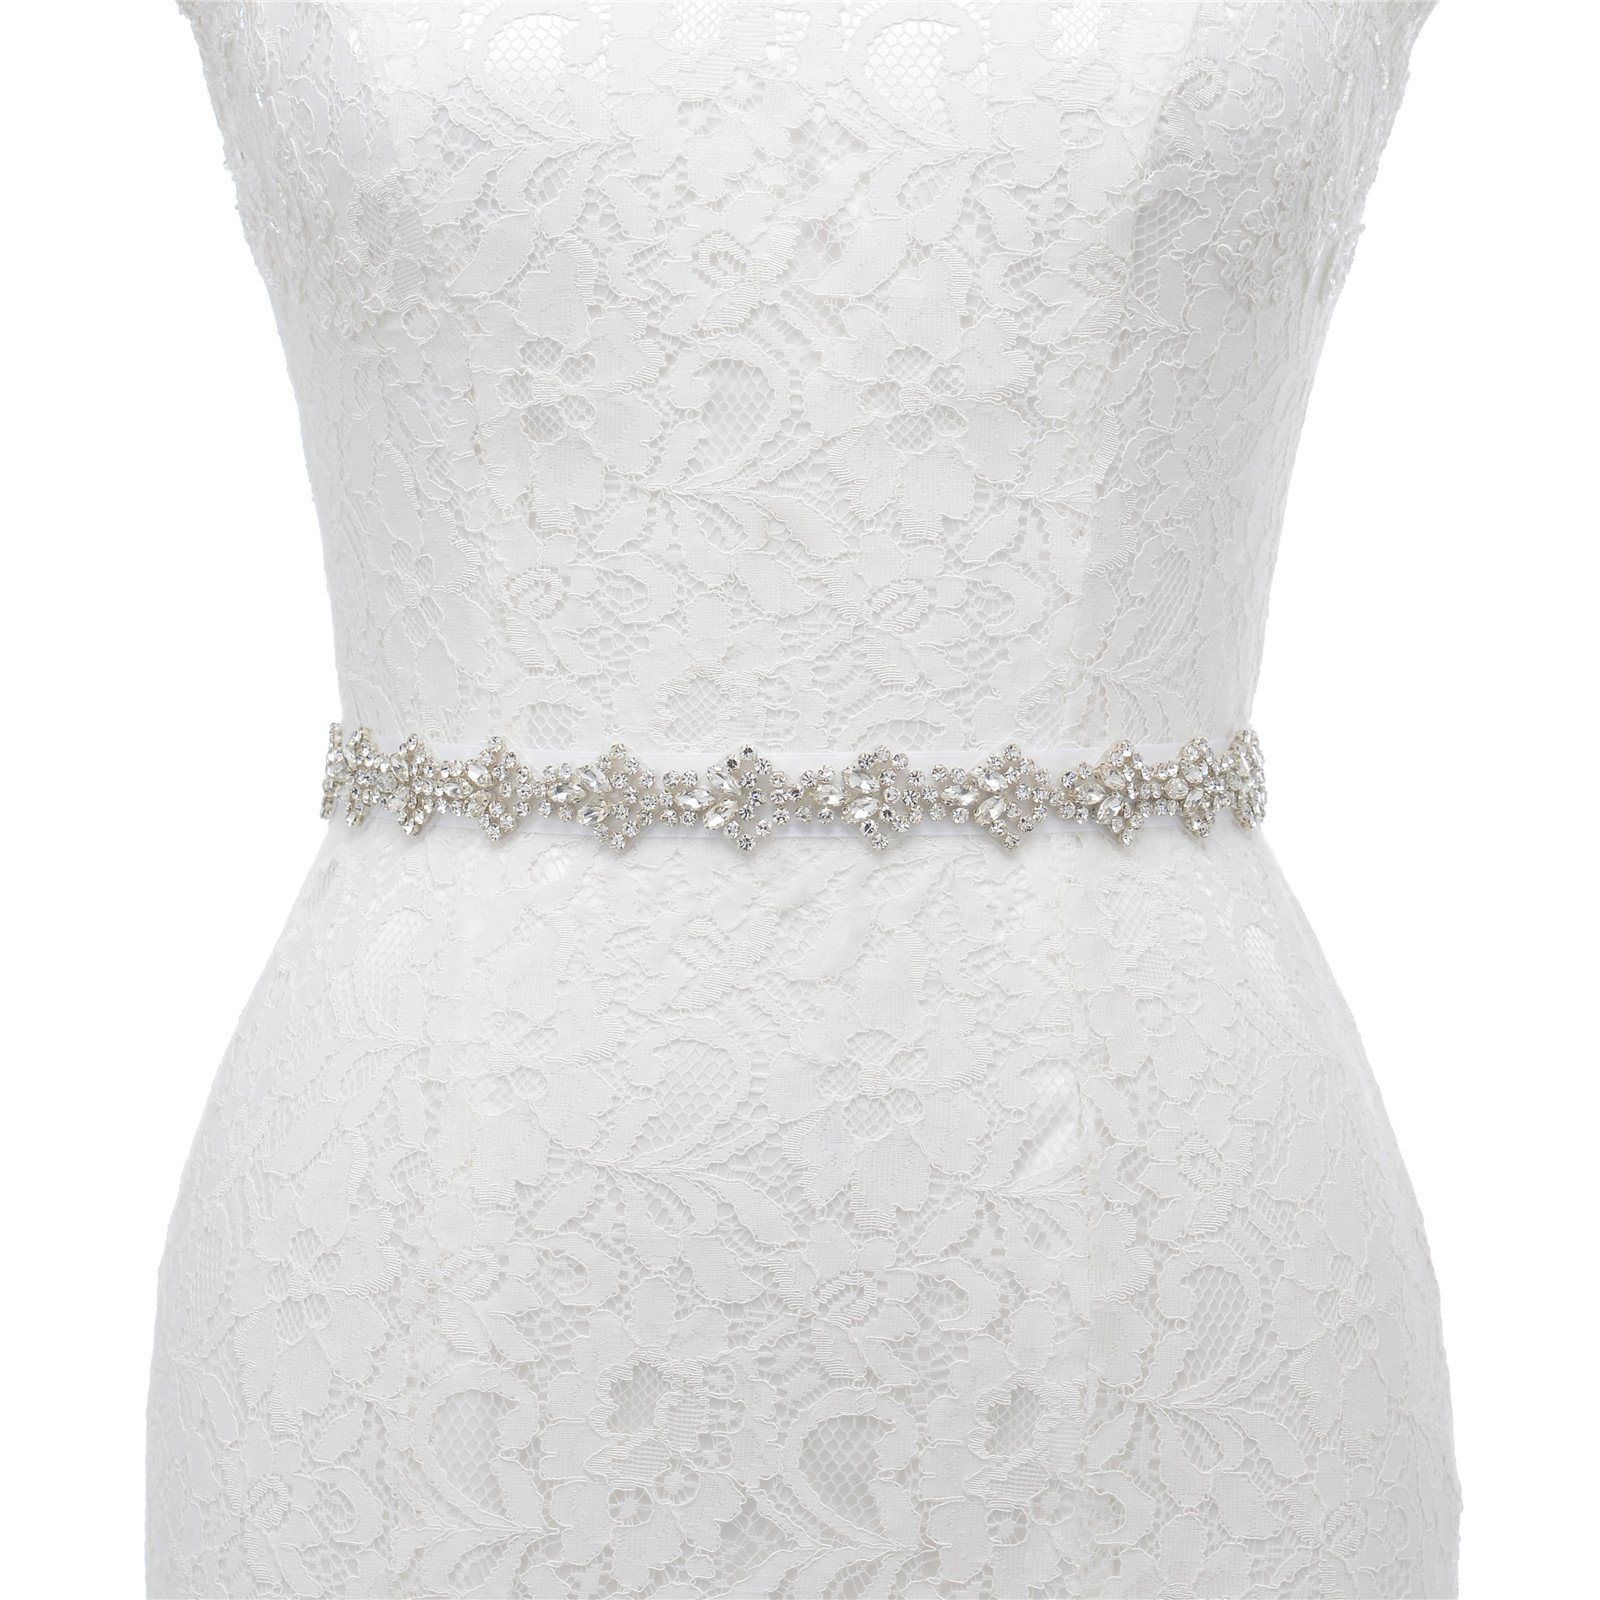 AW Crystal Wedding Dress Belt Women's Rhinestone Sash Belt, 17 x 1 inch, White